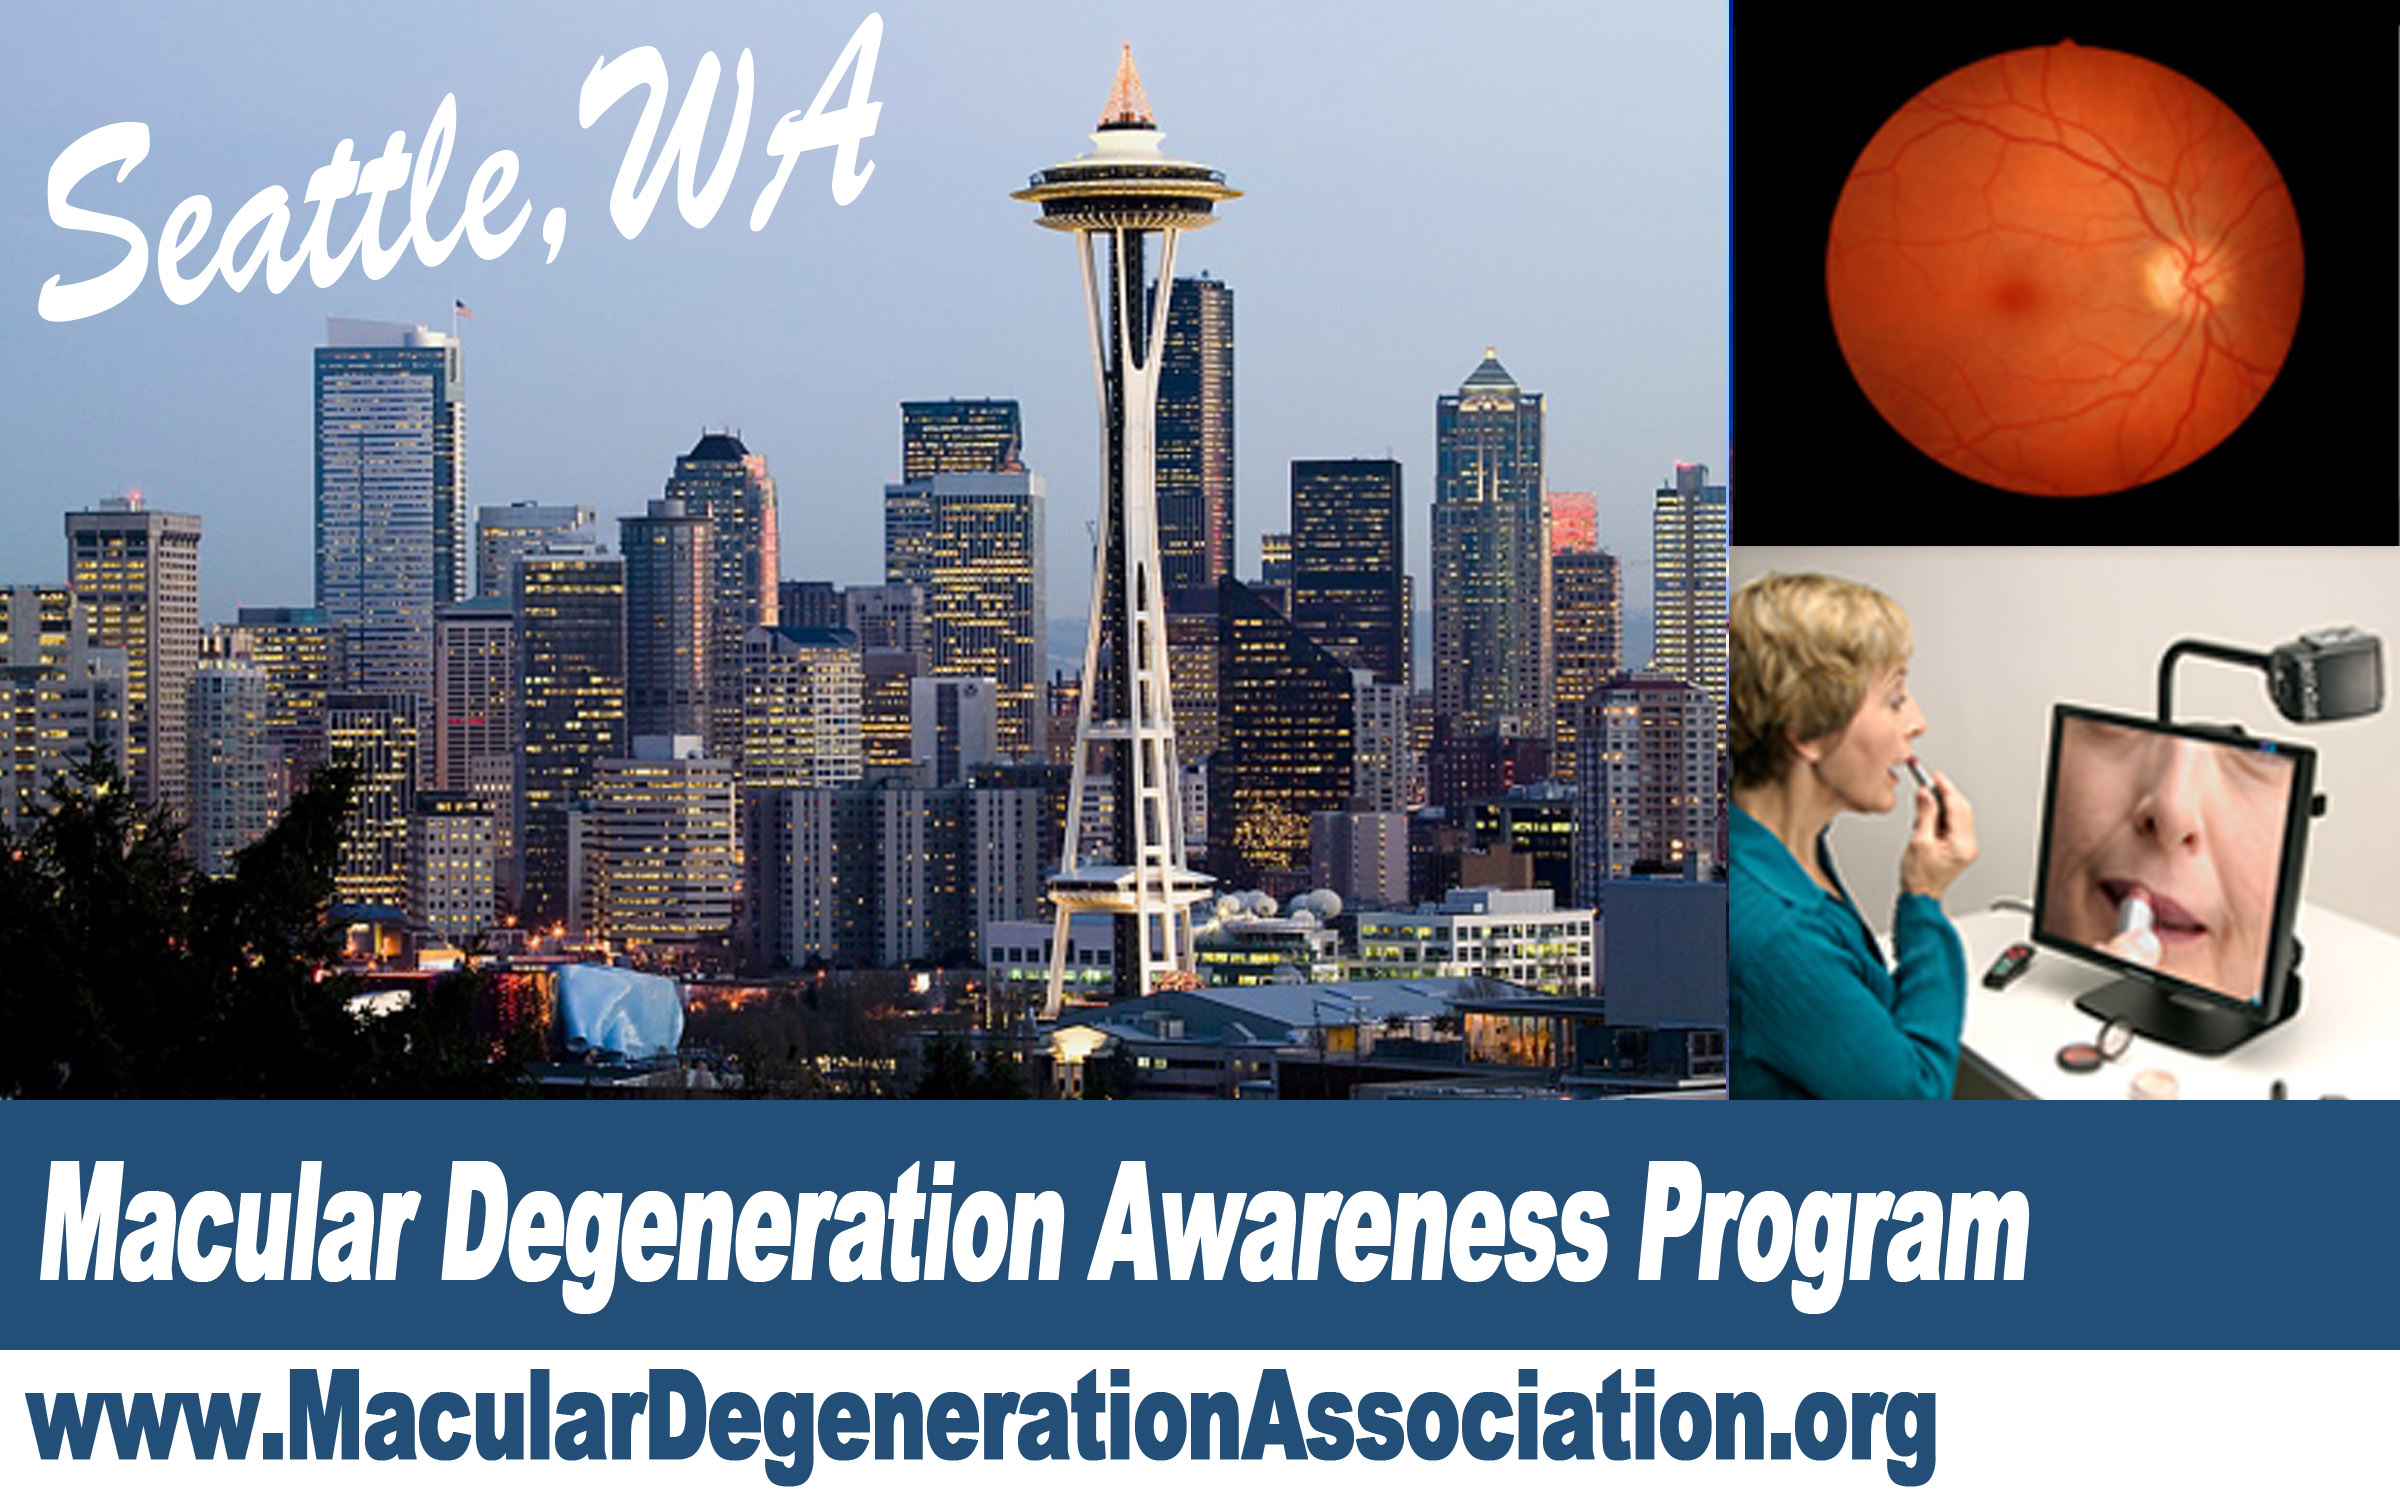 Seattle, WA awareness program